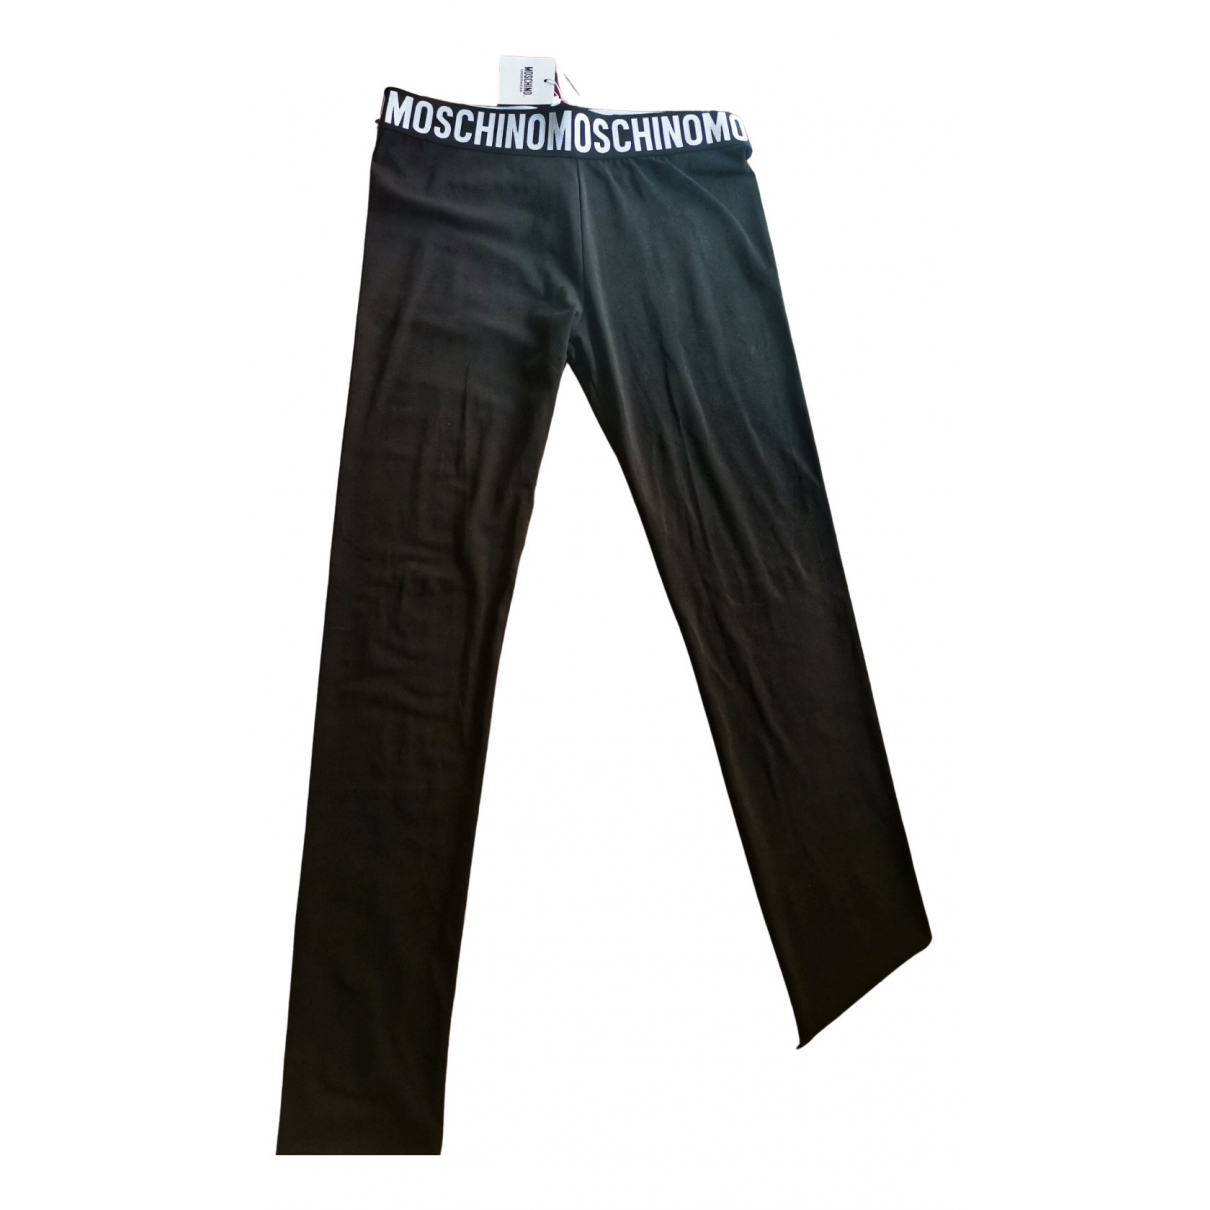 Moschino N Black Cotton Trousers for Women S International